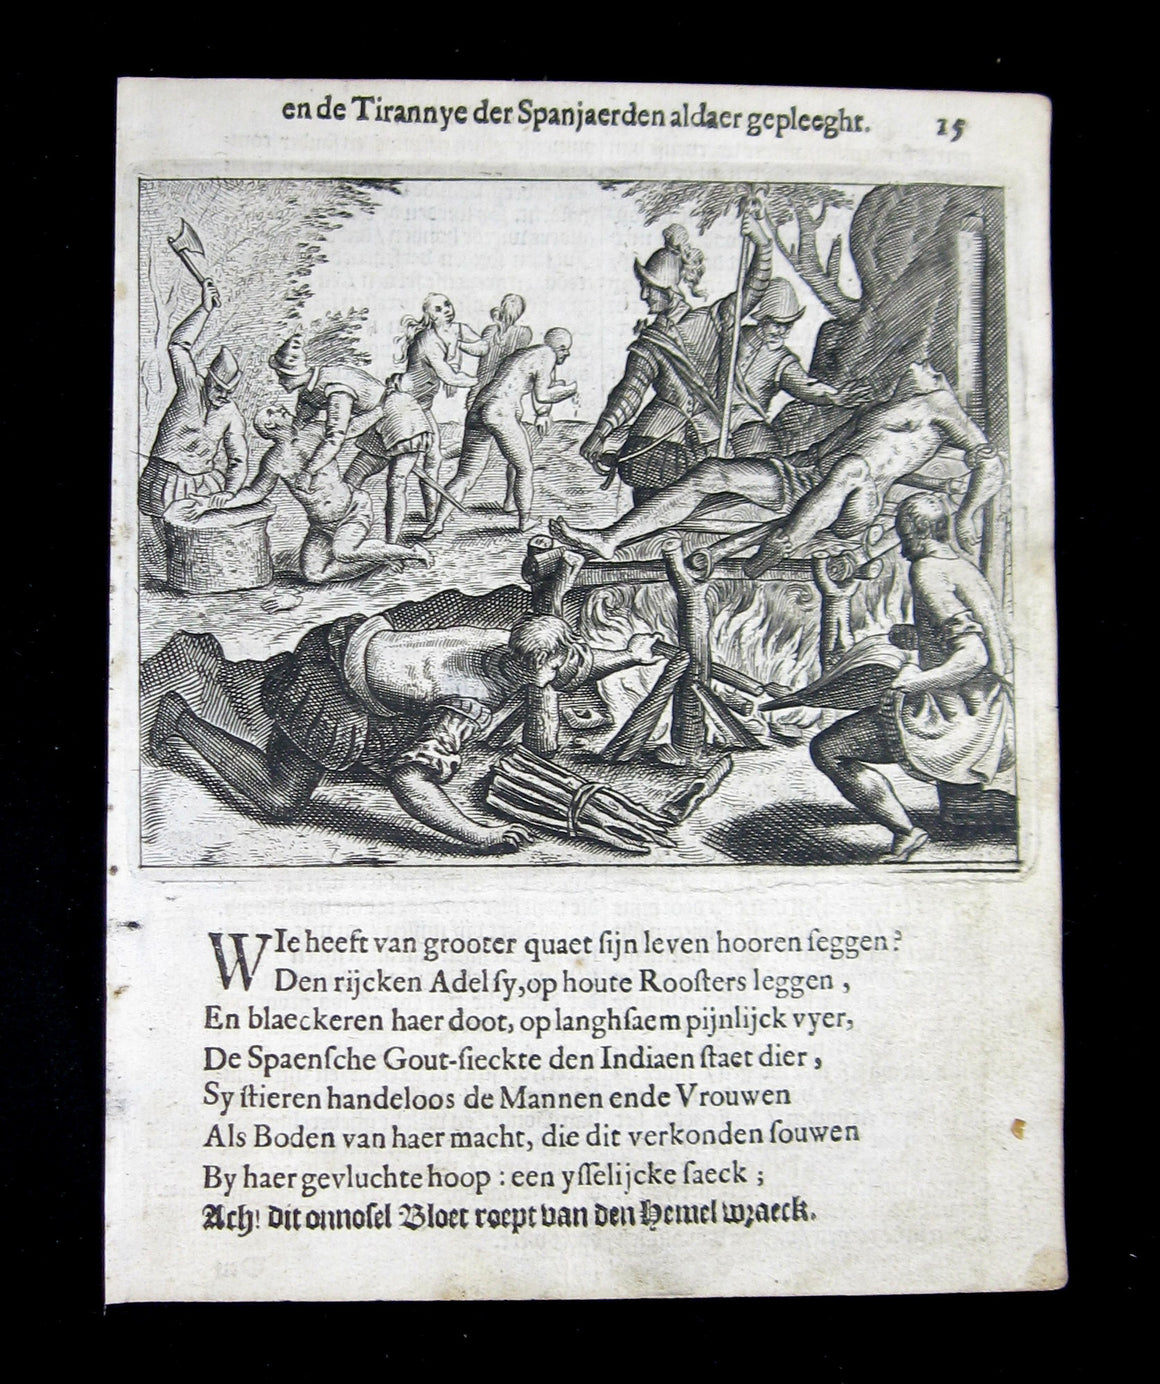 Engraving of Spanish torturing natives in America - Bartolomé de Las Casas 1664 #1/2